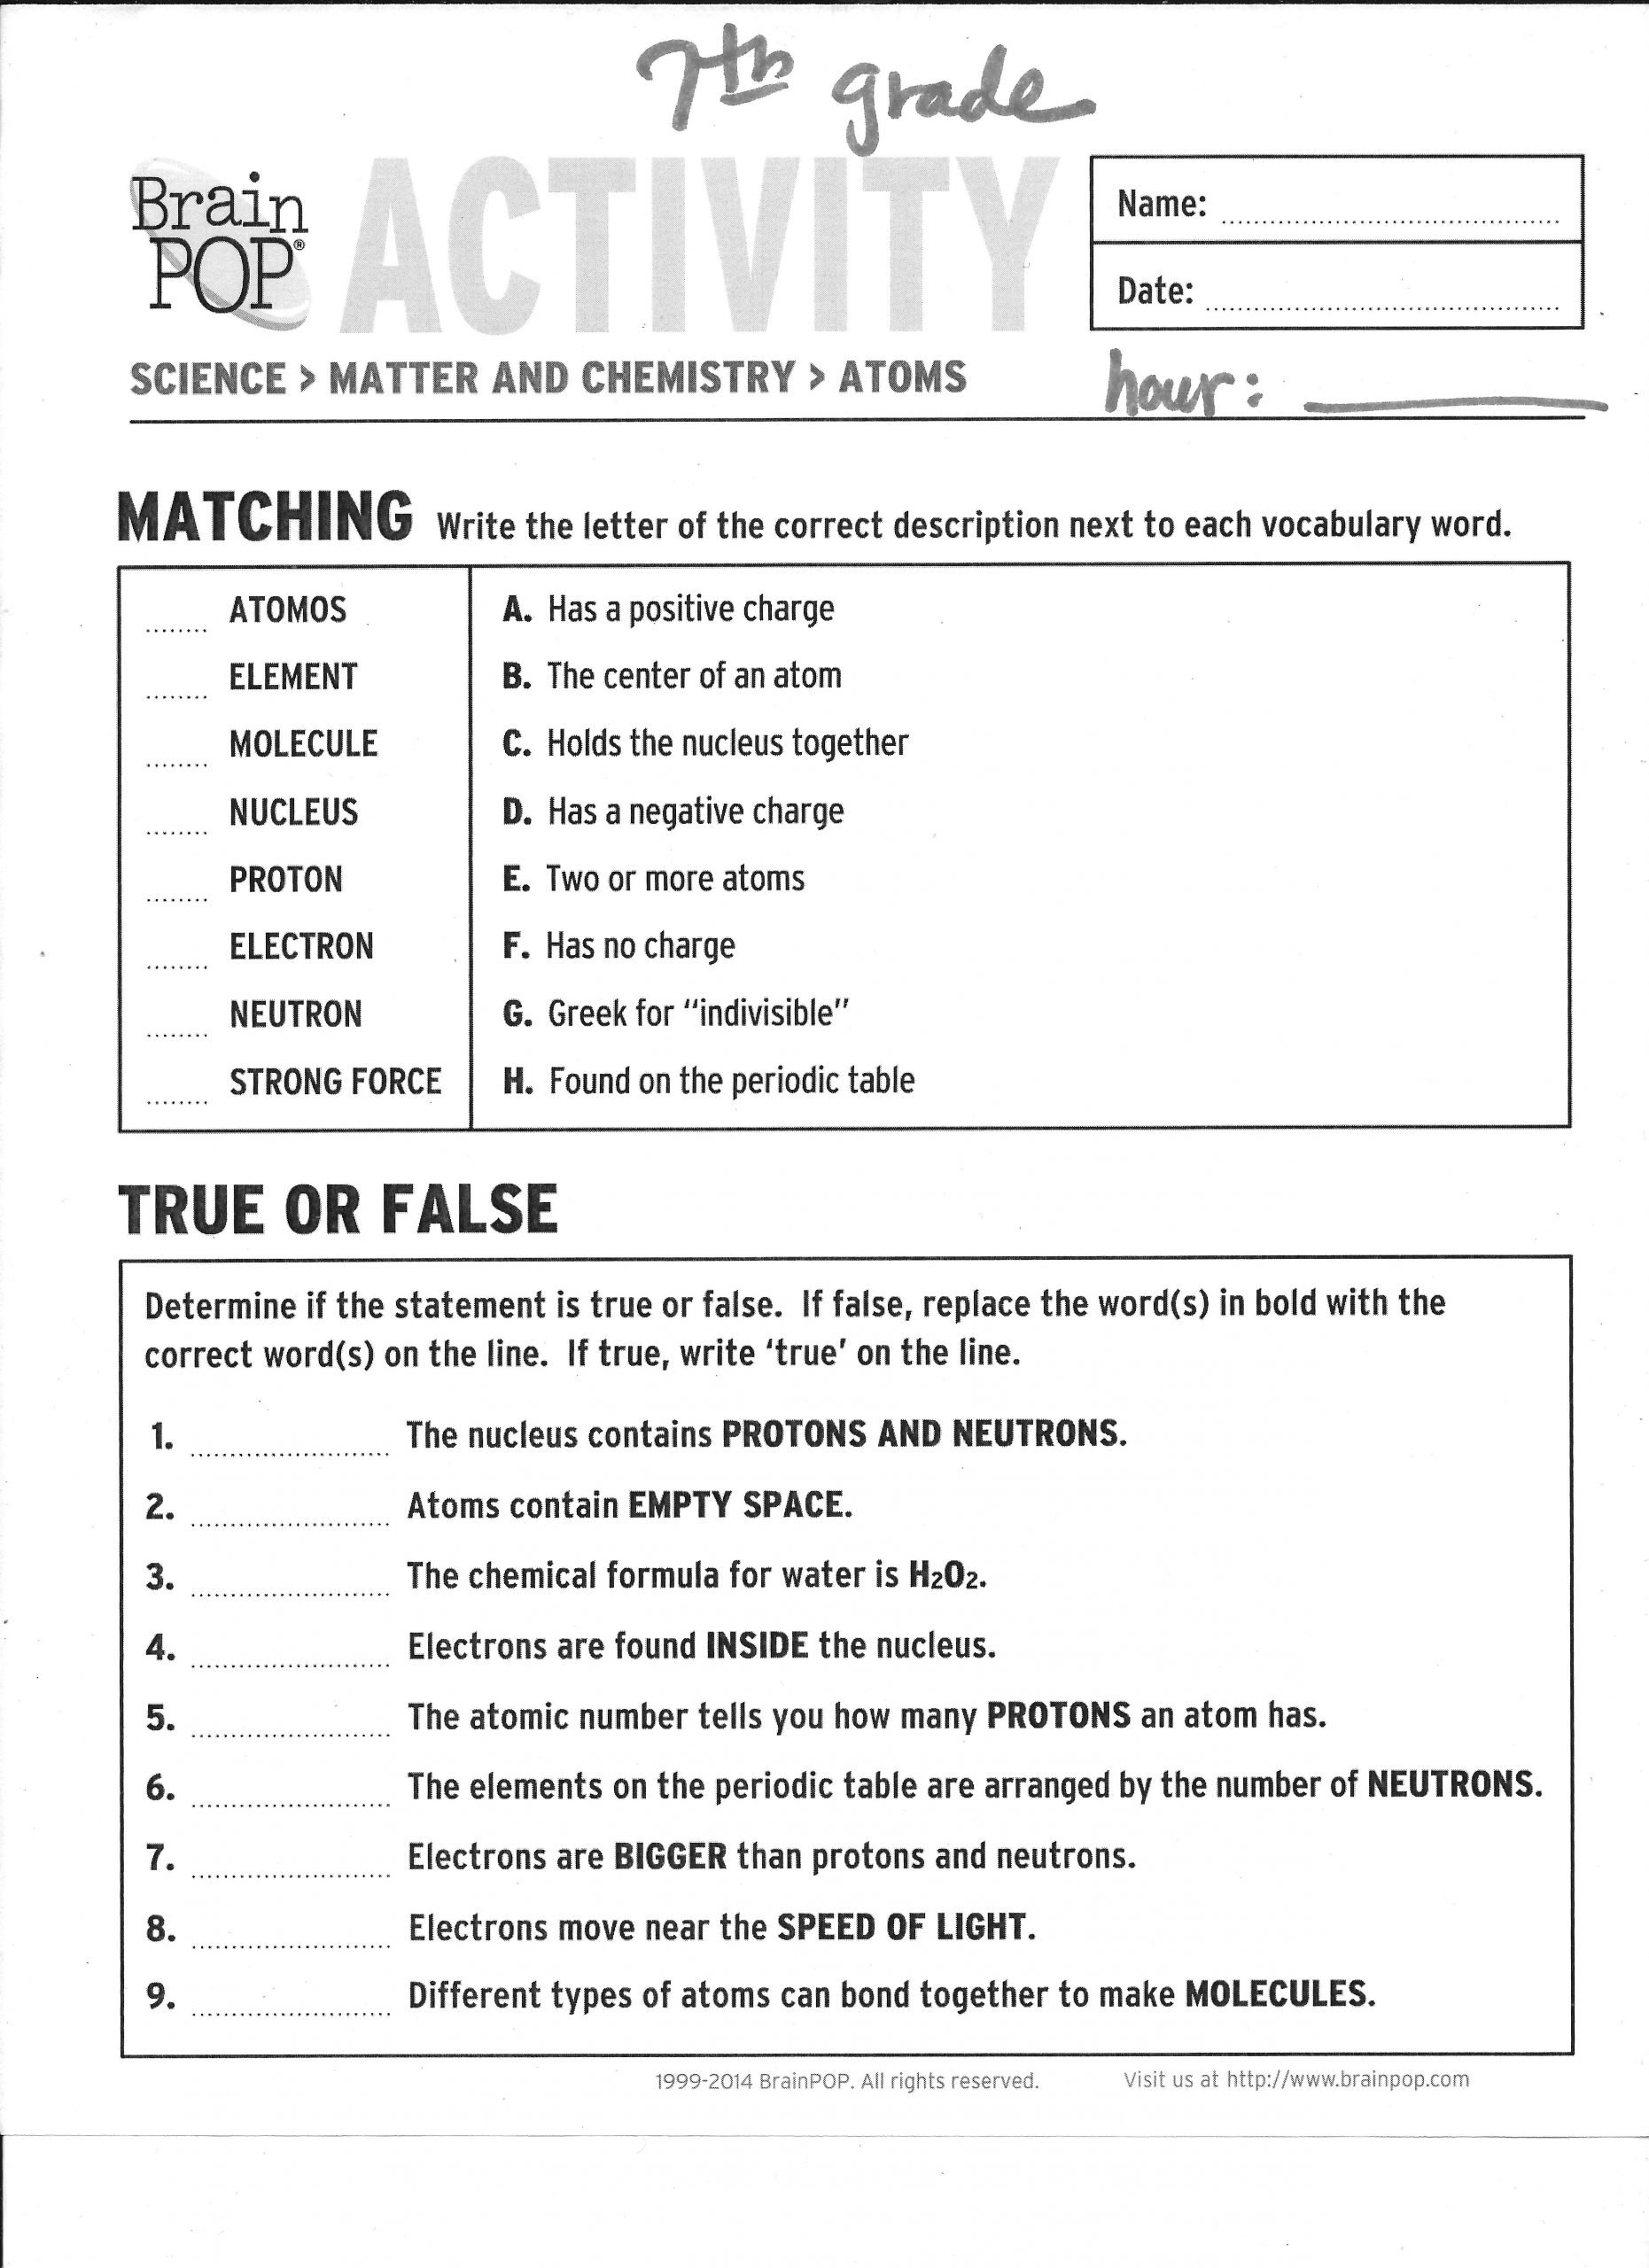 Brainpop Periodic Table Worksheet Answers 7th Grade